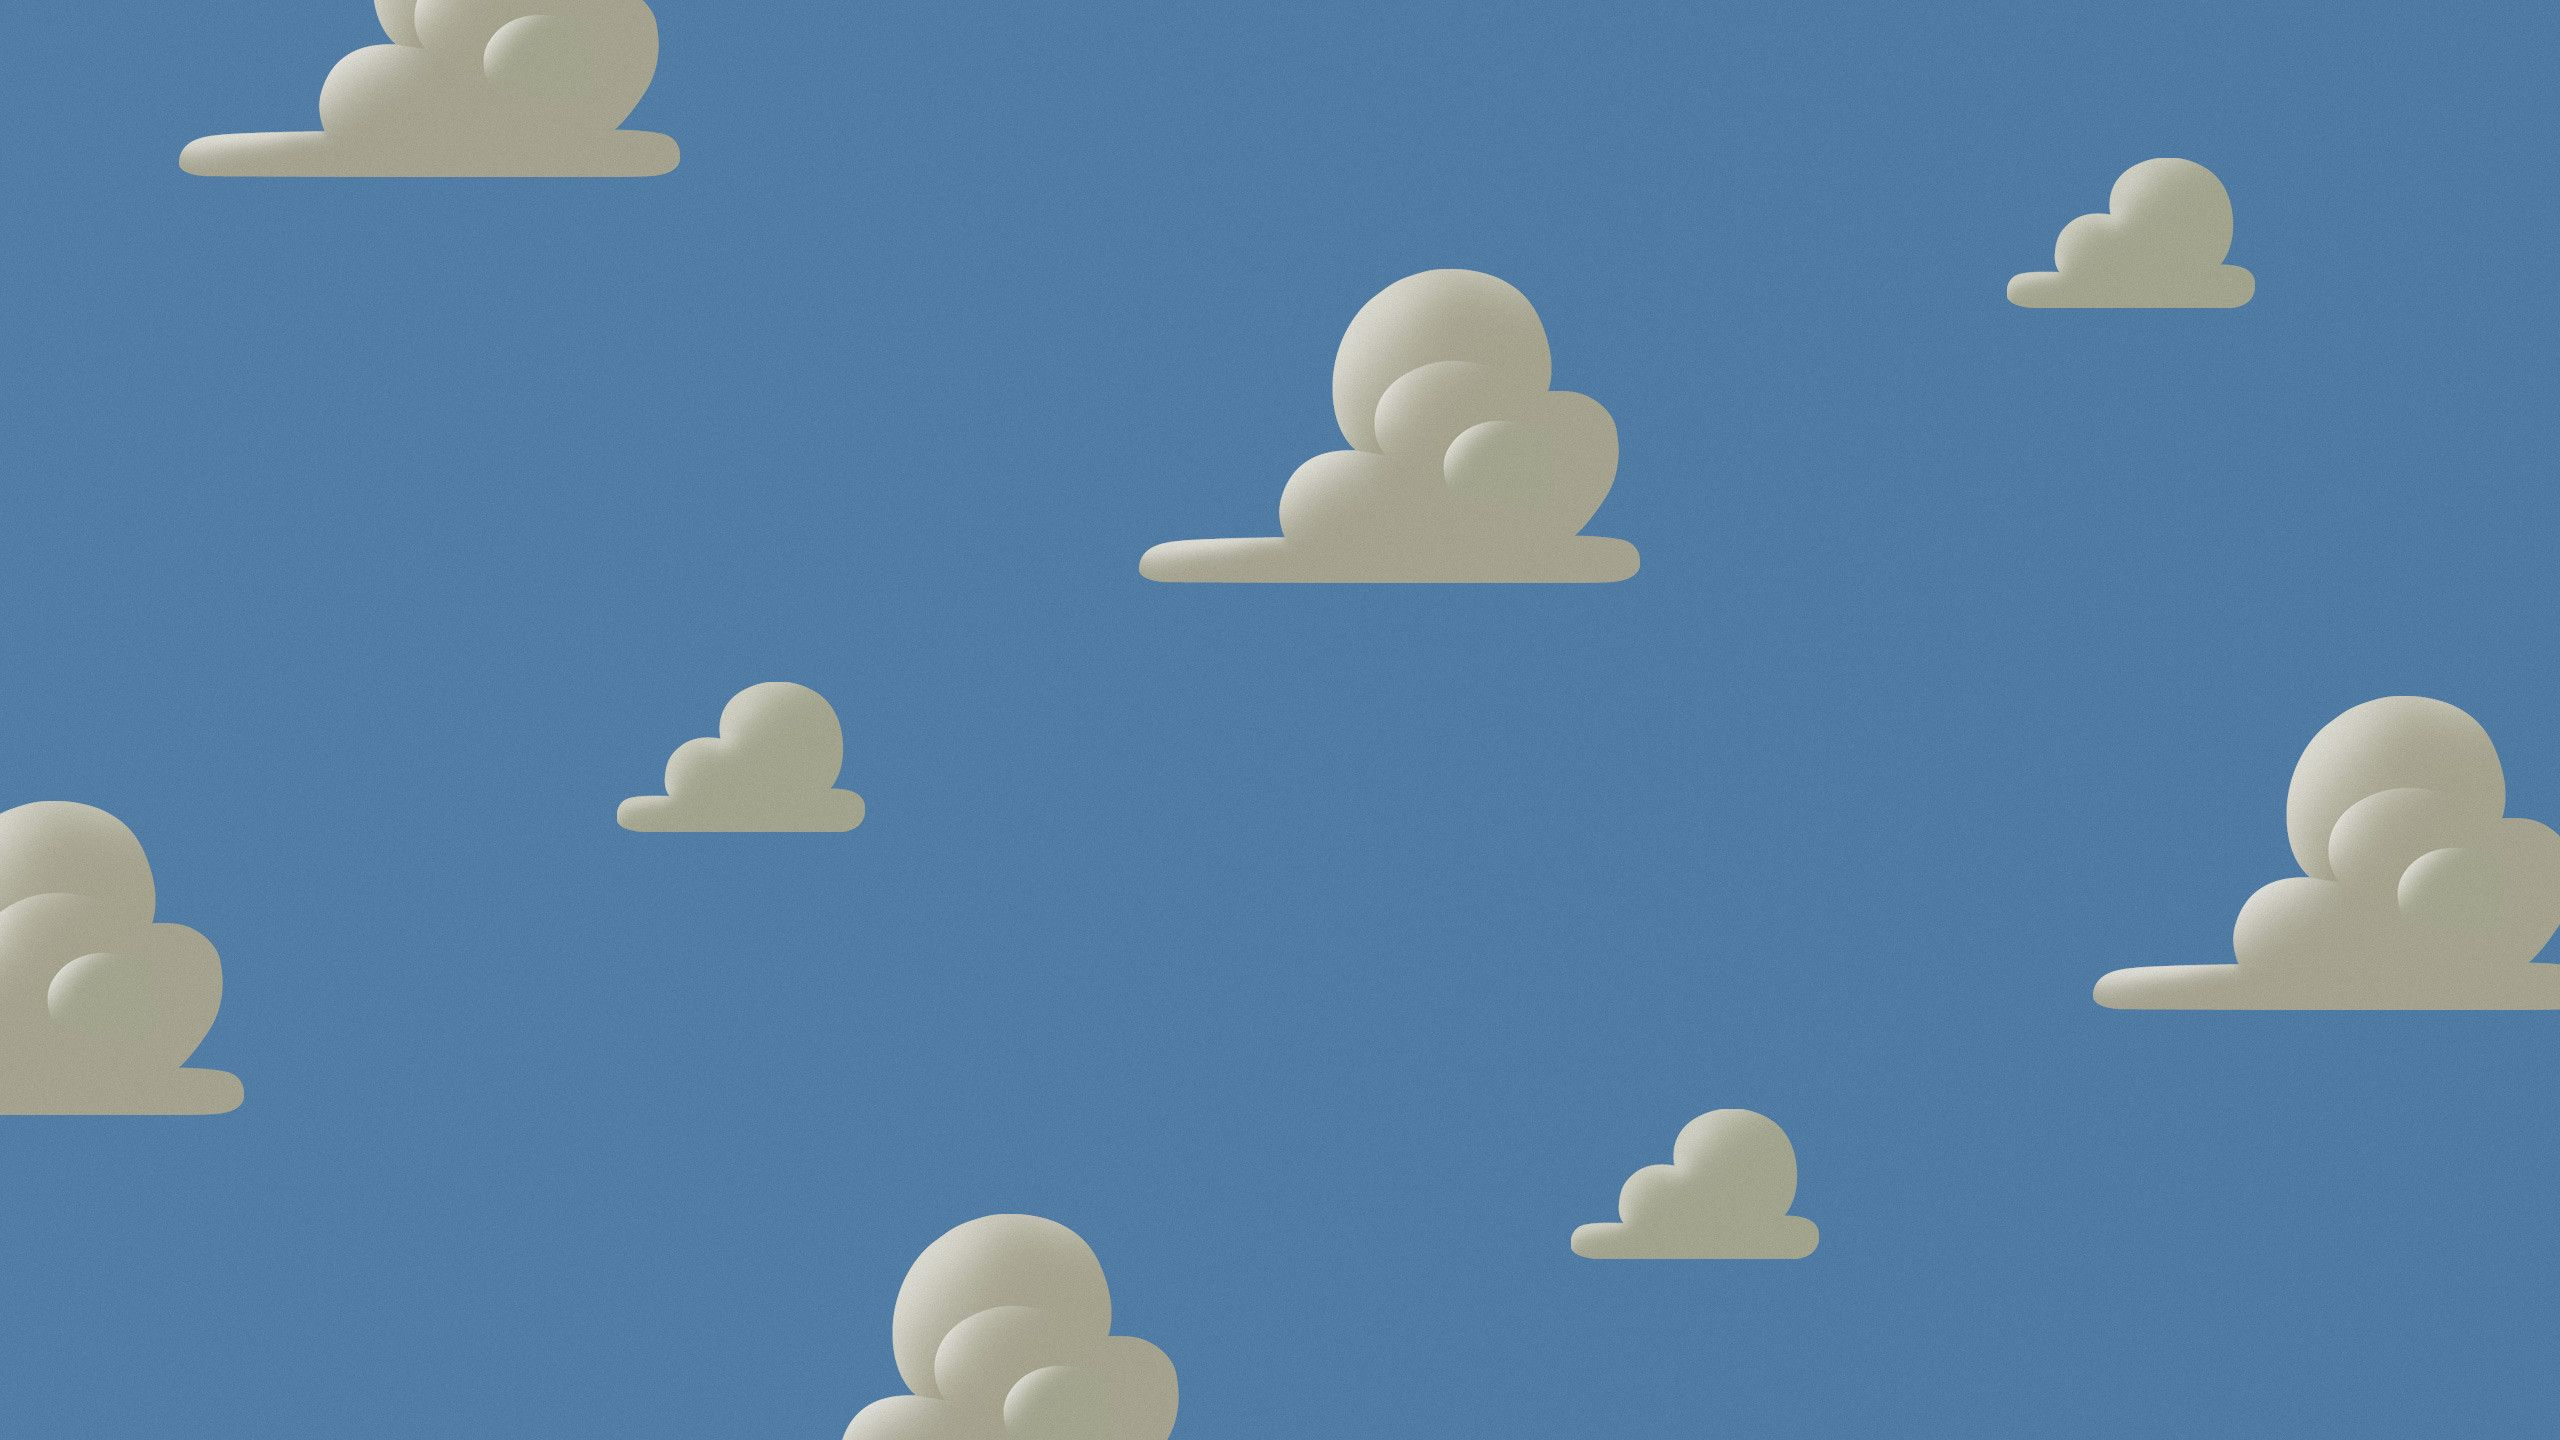 Give Your Desktop A Break With These Relaxing Wallpapers Toy Story Clouds Aesthetic Desktop Wallpaper Cloud Wallpaper